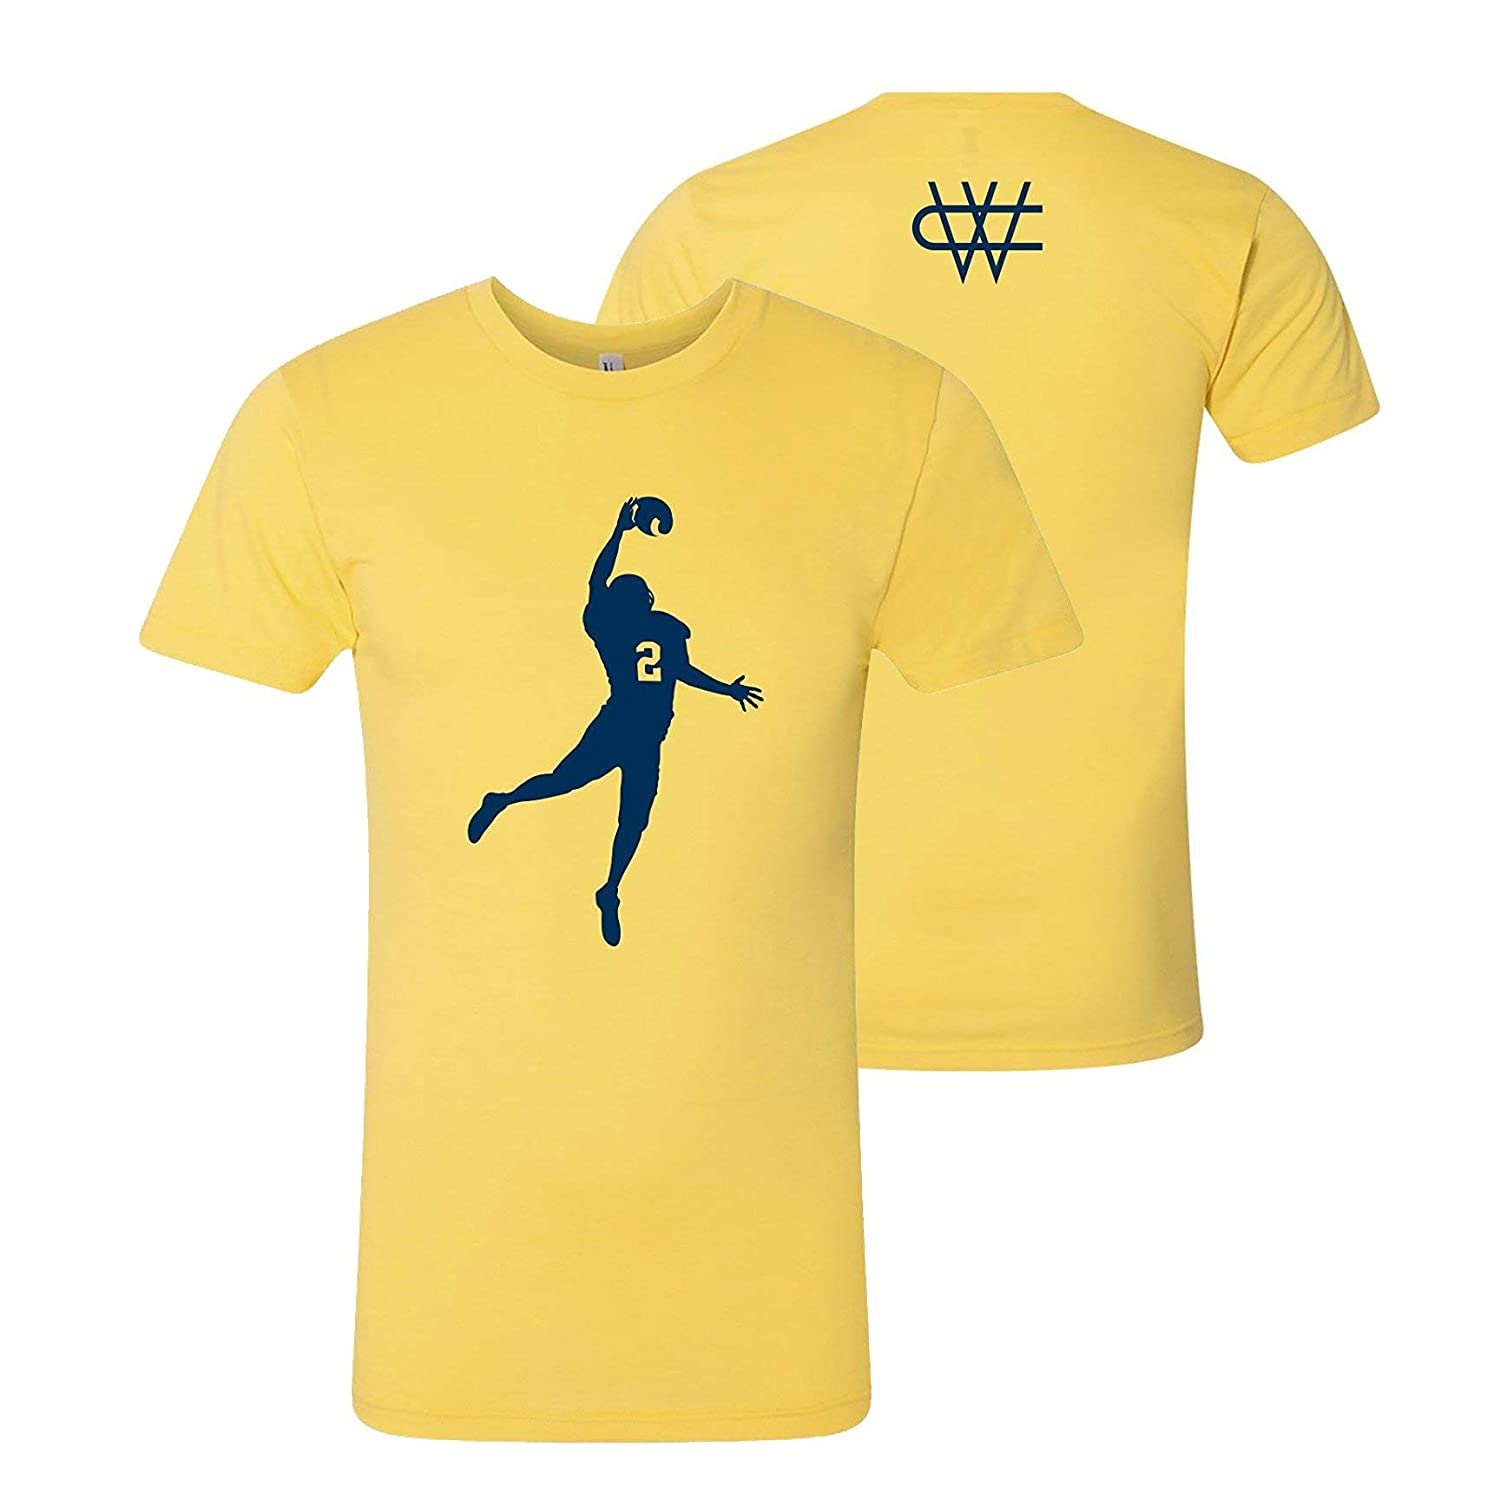 92c5c228 Amazon.com: Charles Woodson The Pick - Michigan Football American Apparel  50/50 T Shirt: Clothing